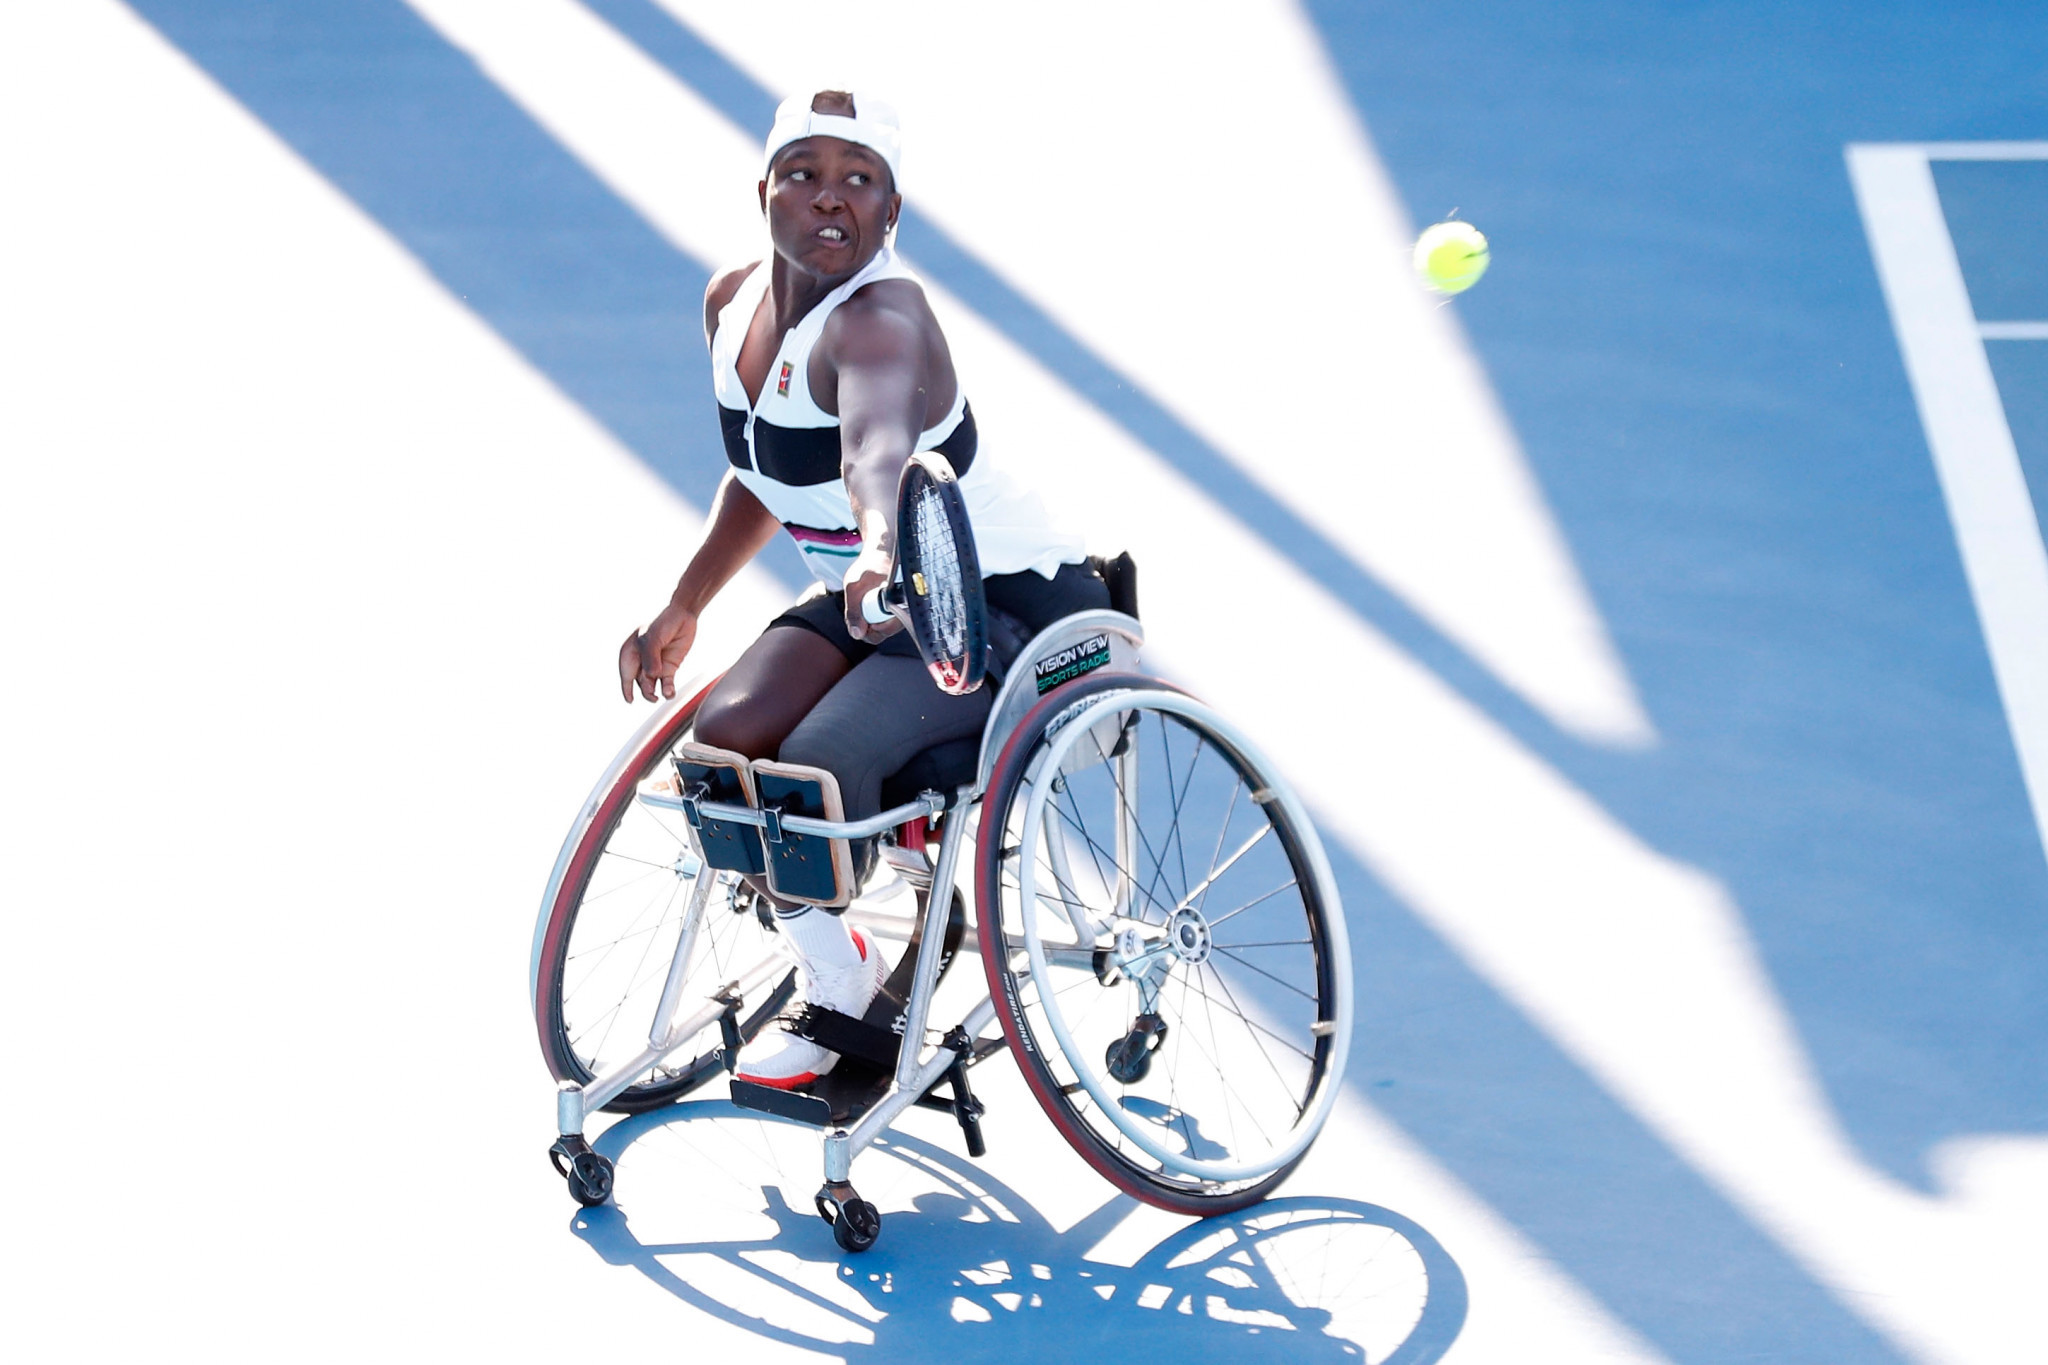 Montjane beats Van Koot to maintain bid for glory at NEC Wheelchair Singles Masters